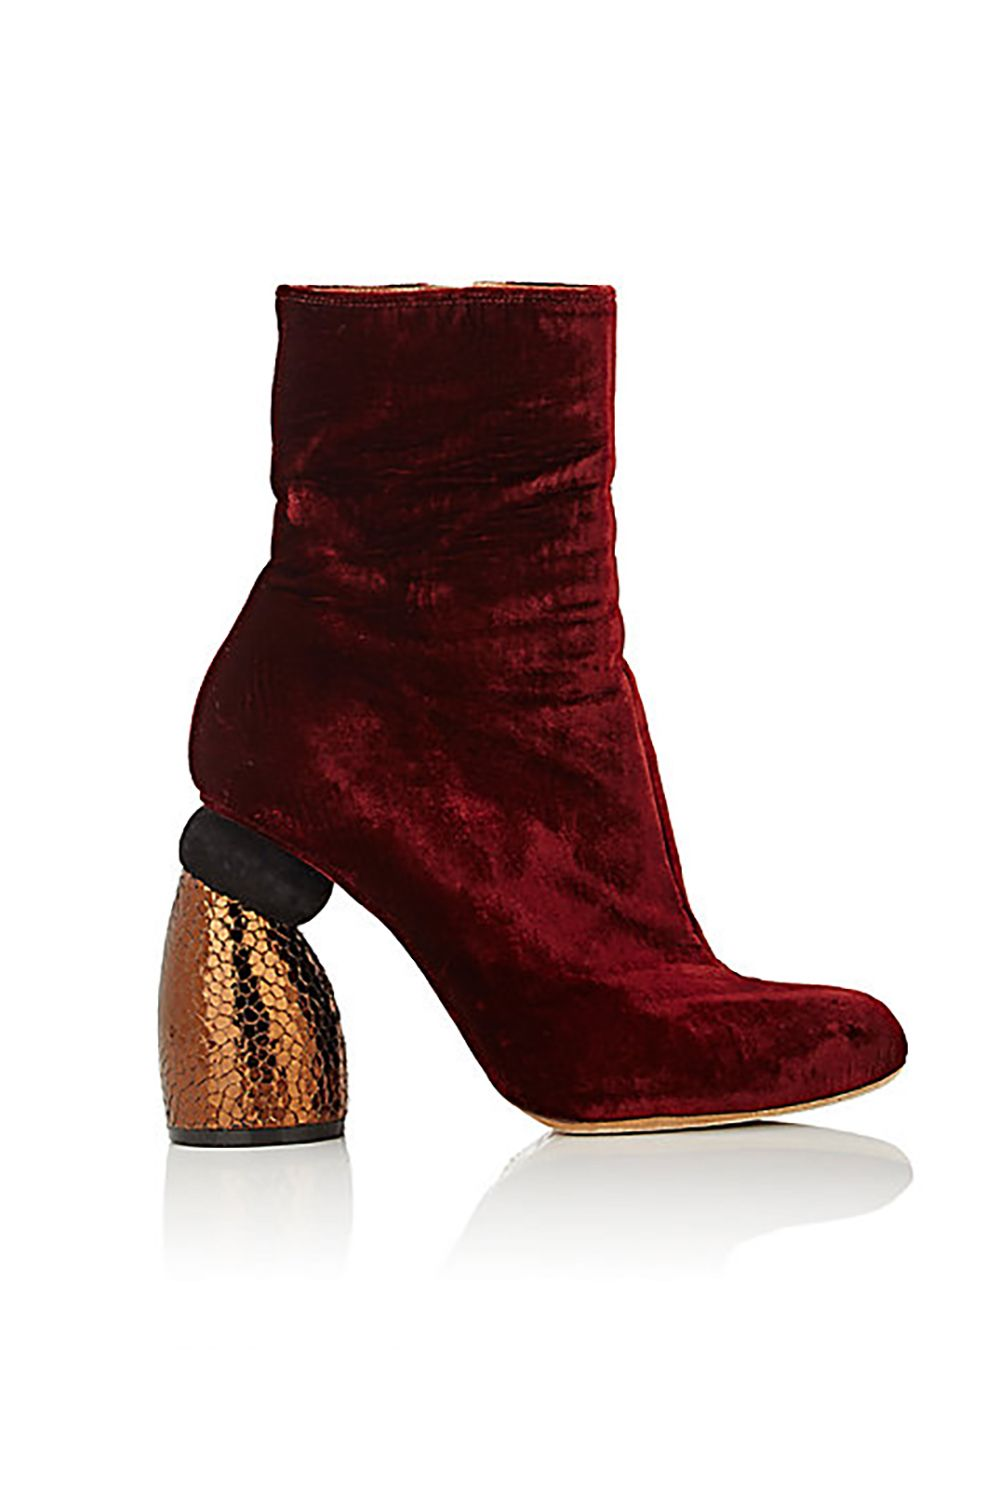 """<p>Burgundy velvet on a curvycopper leather heel is <i data-redactor-tag=""""i"""">totally</i> worth the splurge.</p><p>$980,<a href=""""http://www.barneys.com/product/dries-van-noten-sculpted-heel-ankle-boots-504682452.html"""" target=""""_blank"""">barneys.com</a></p>"""